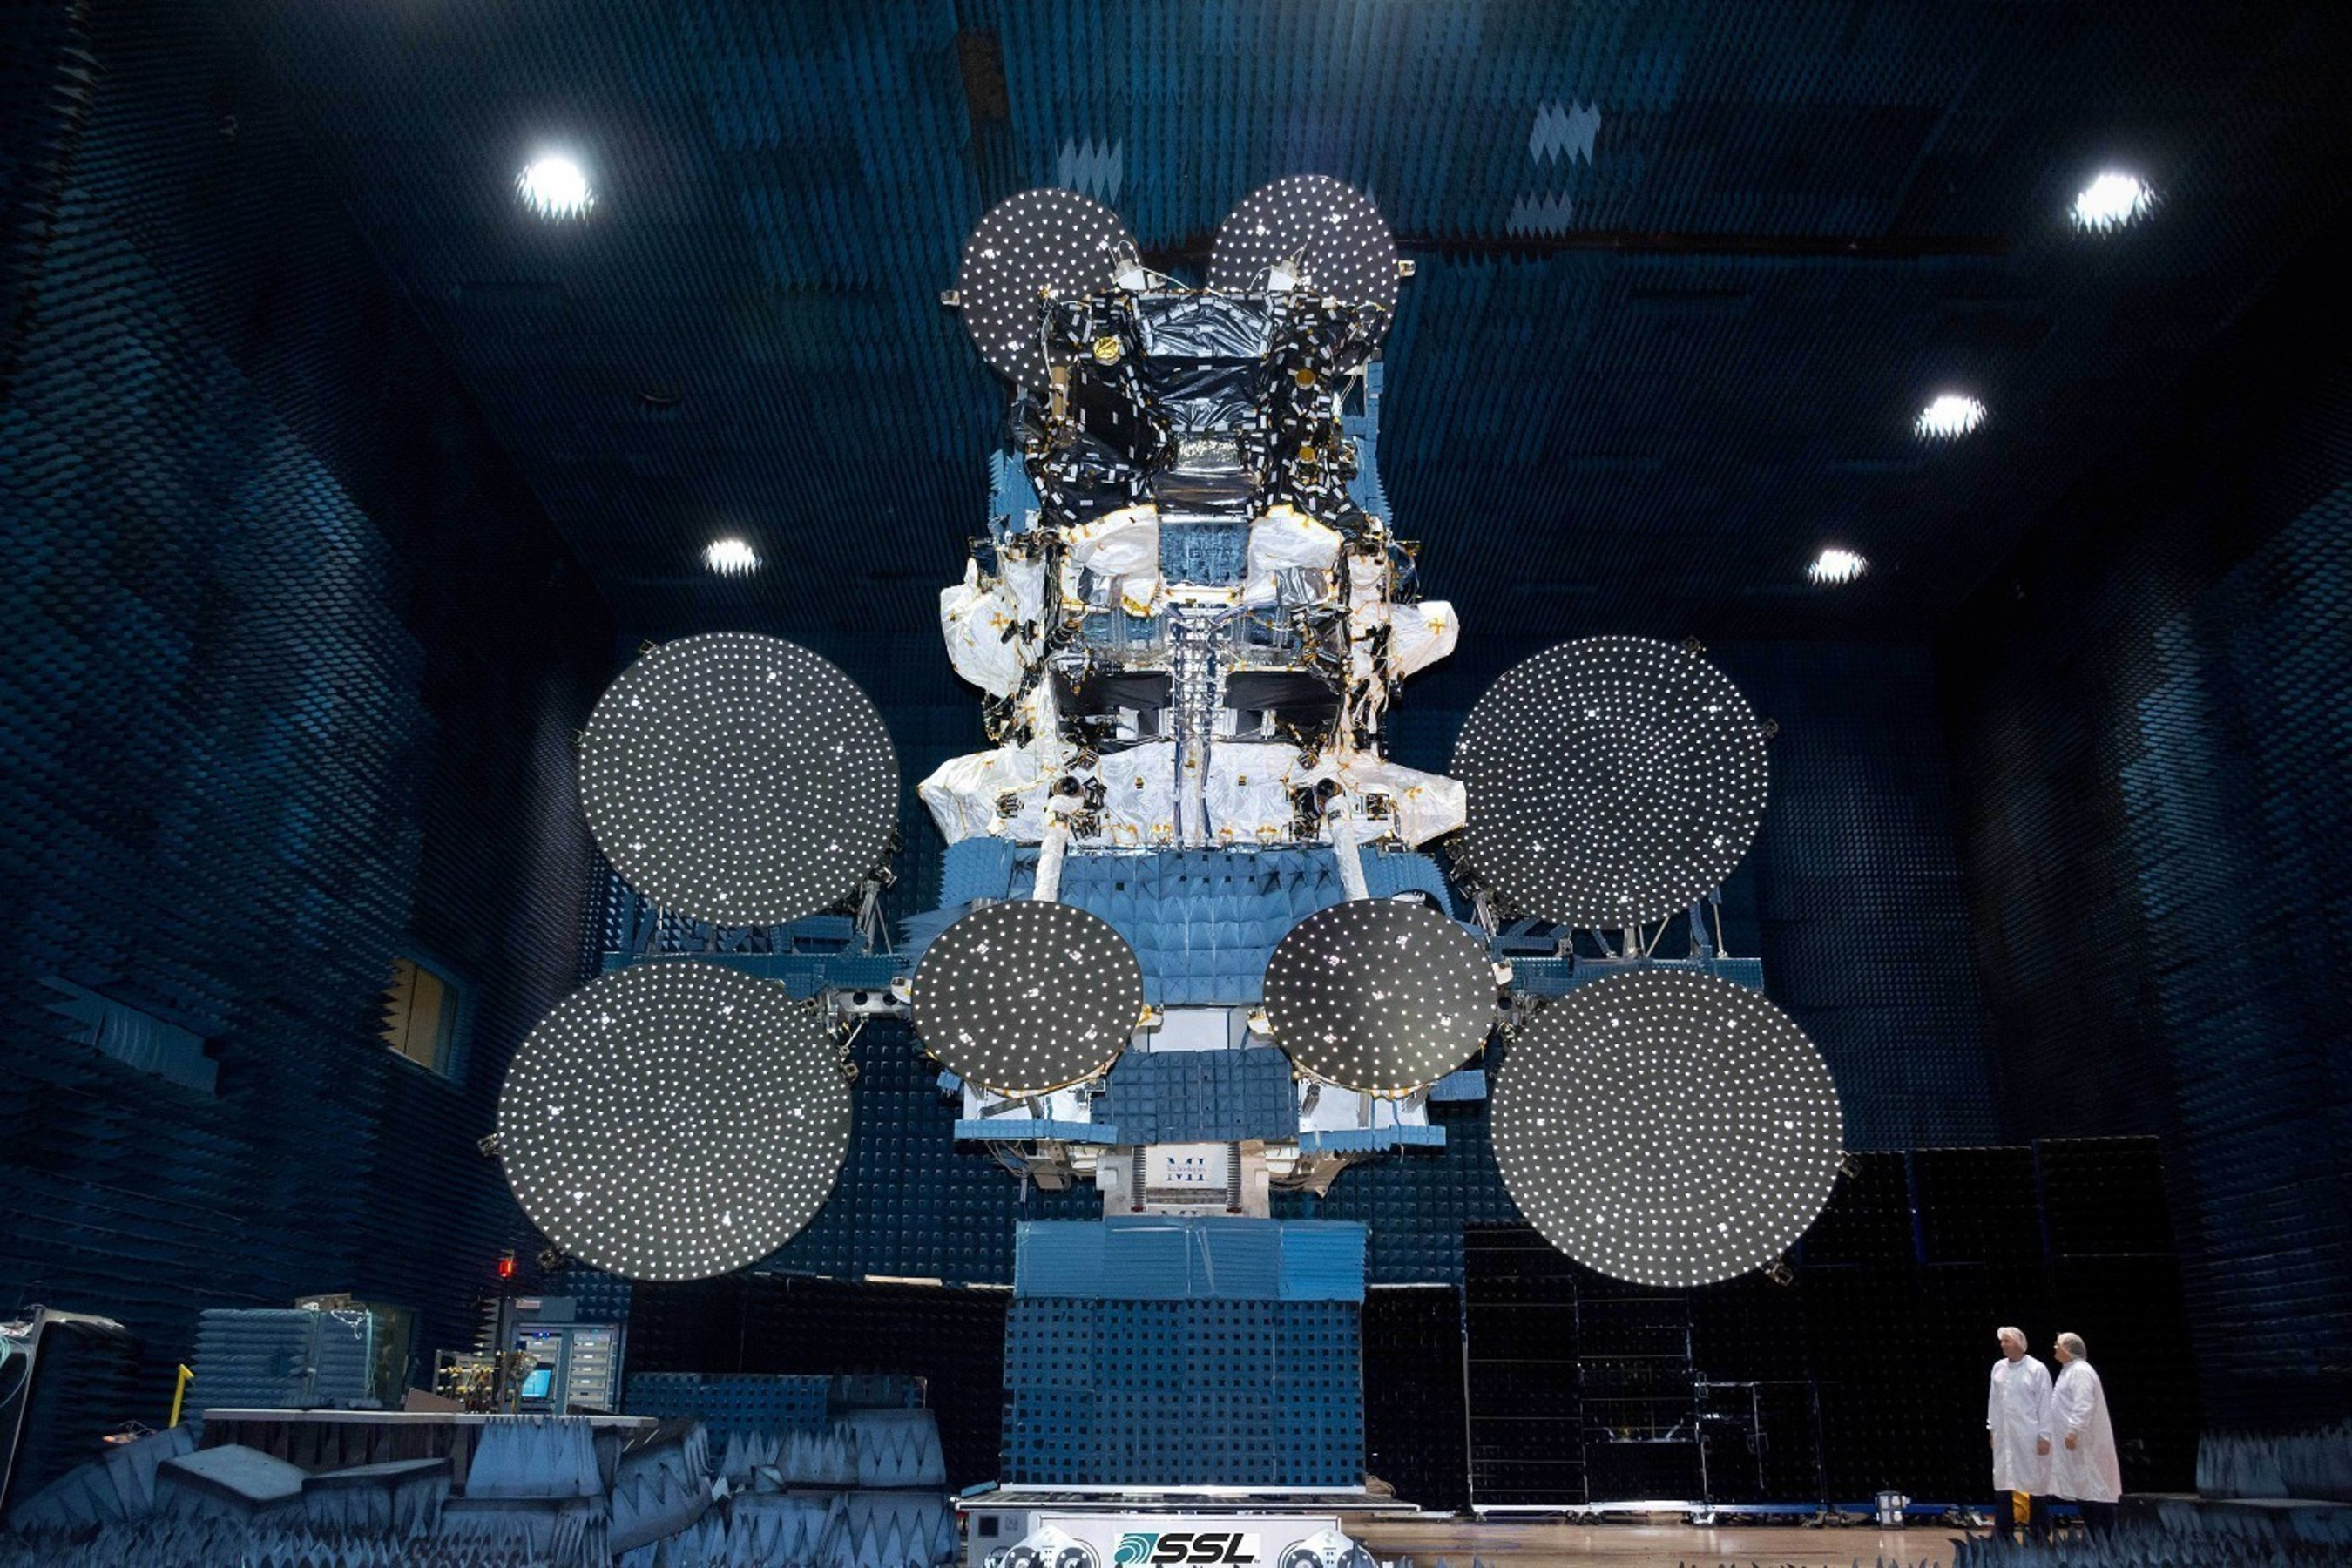 SSL delivers high performance broadband satellite for Australia's national broadband network